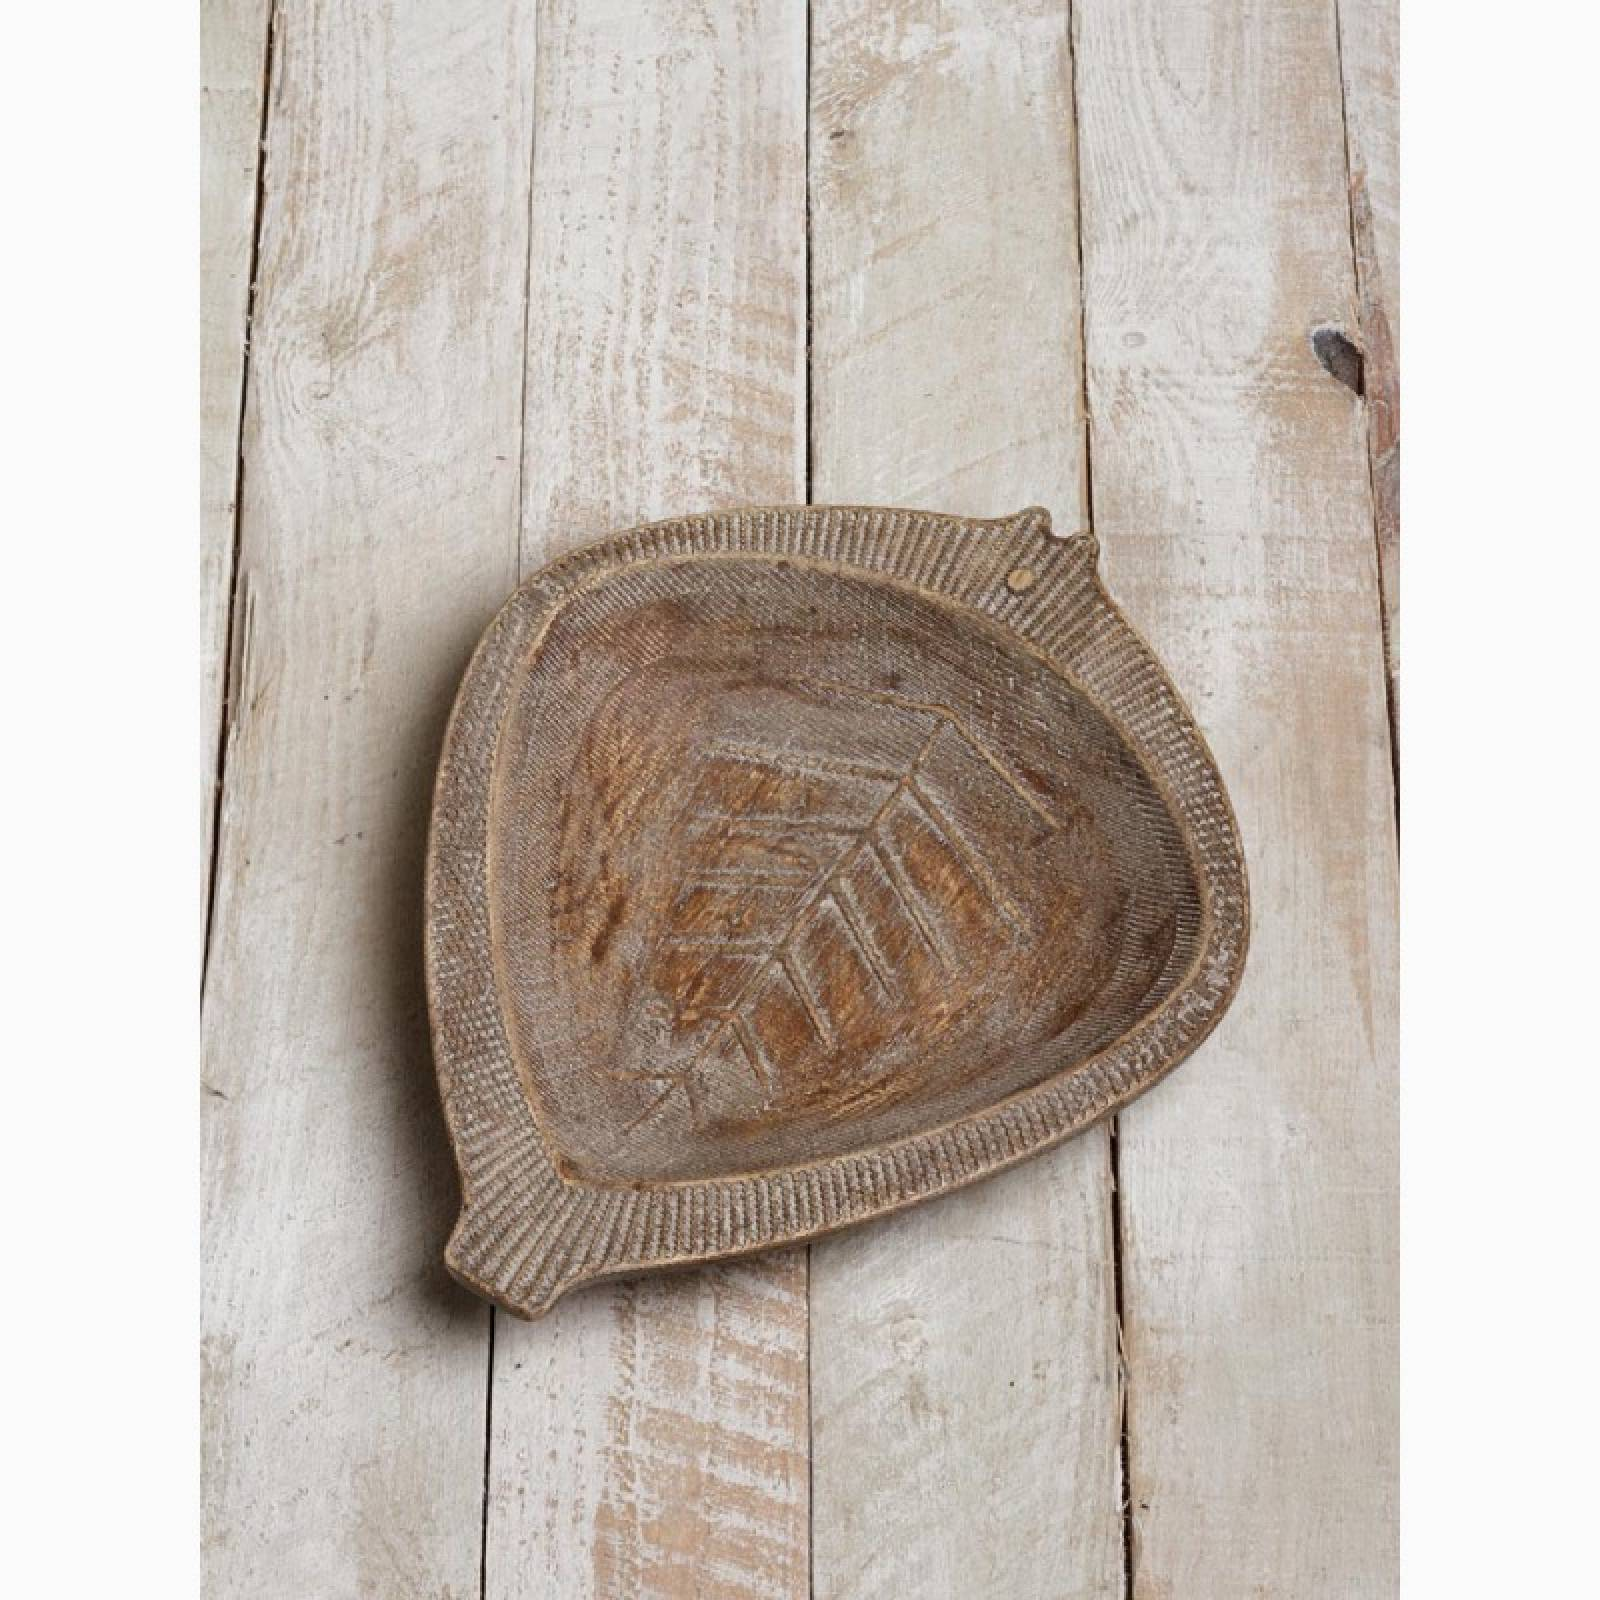 Rustic Wooden Carved Fish Shaped Platter thumbnails